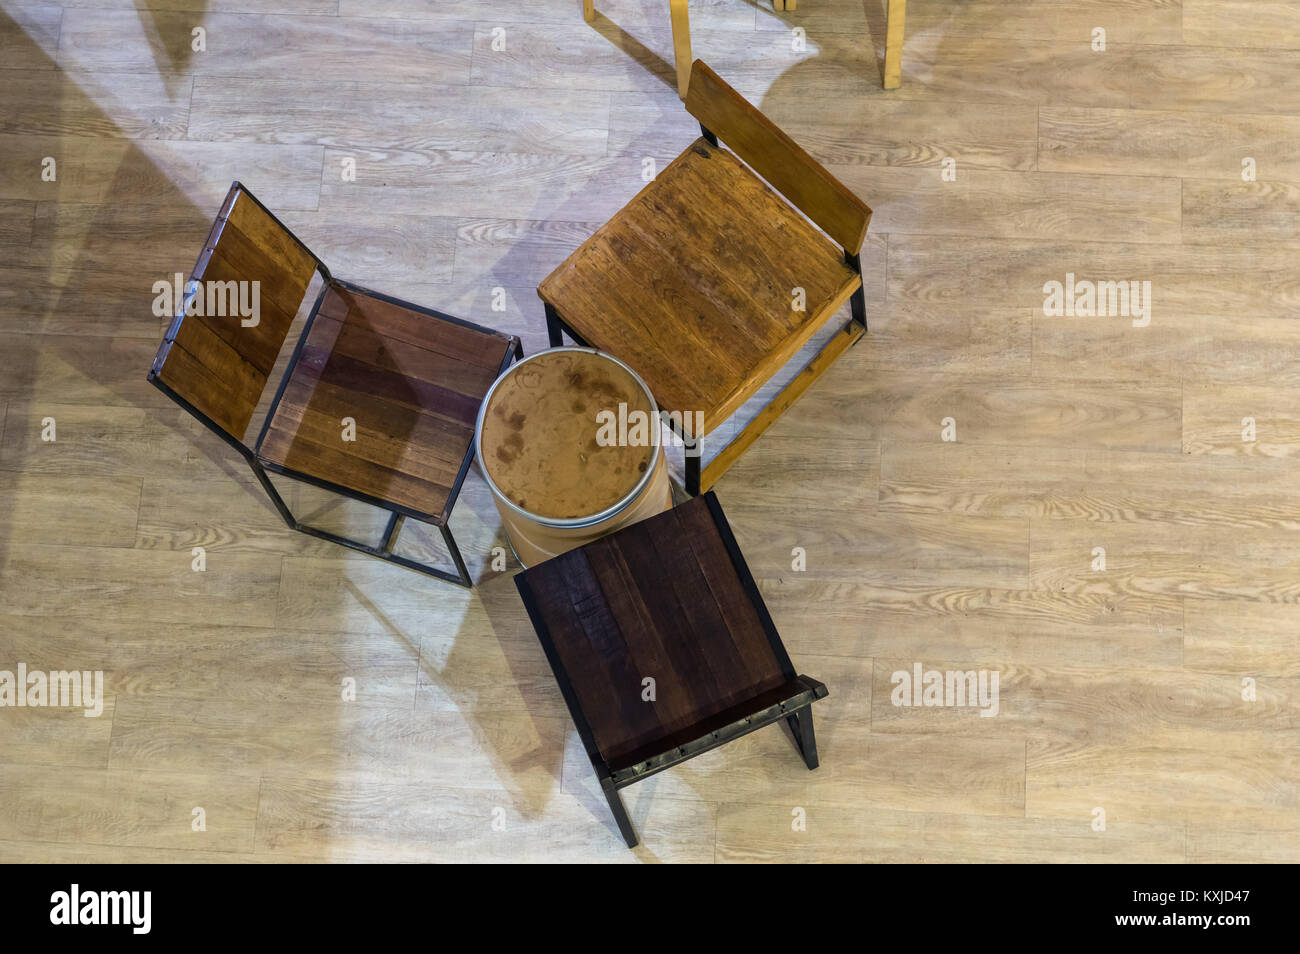 table and chairs top view outline top view shot of vintage tables and chairs over the wooden floor background